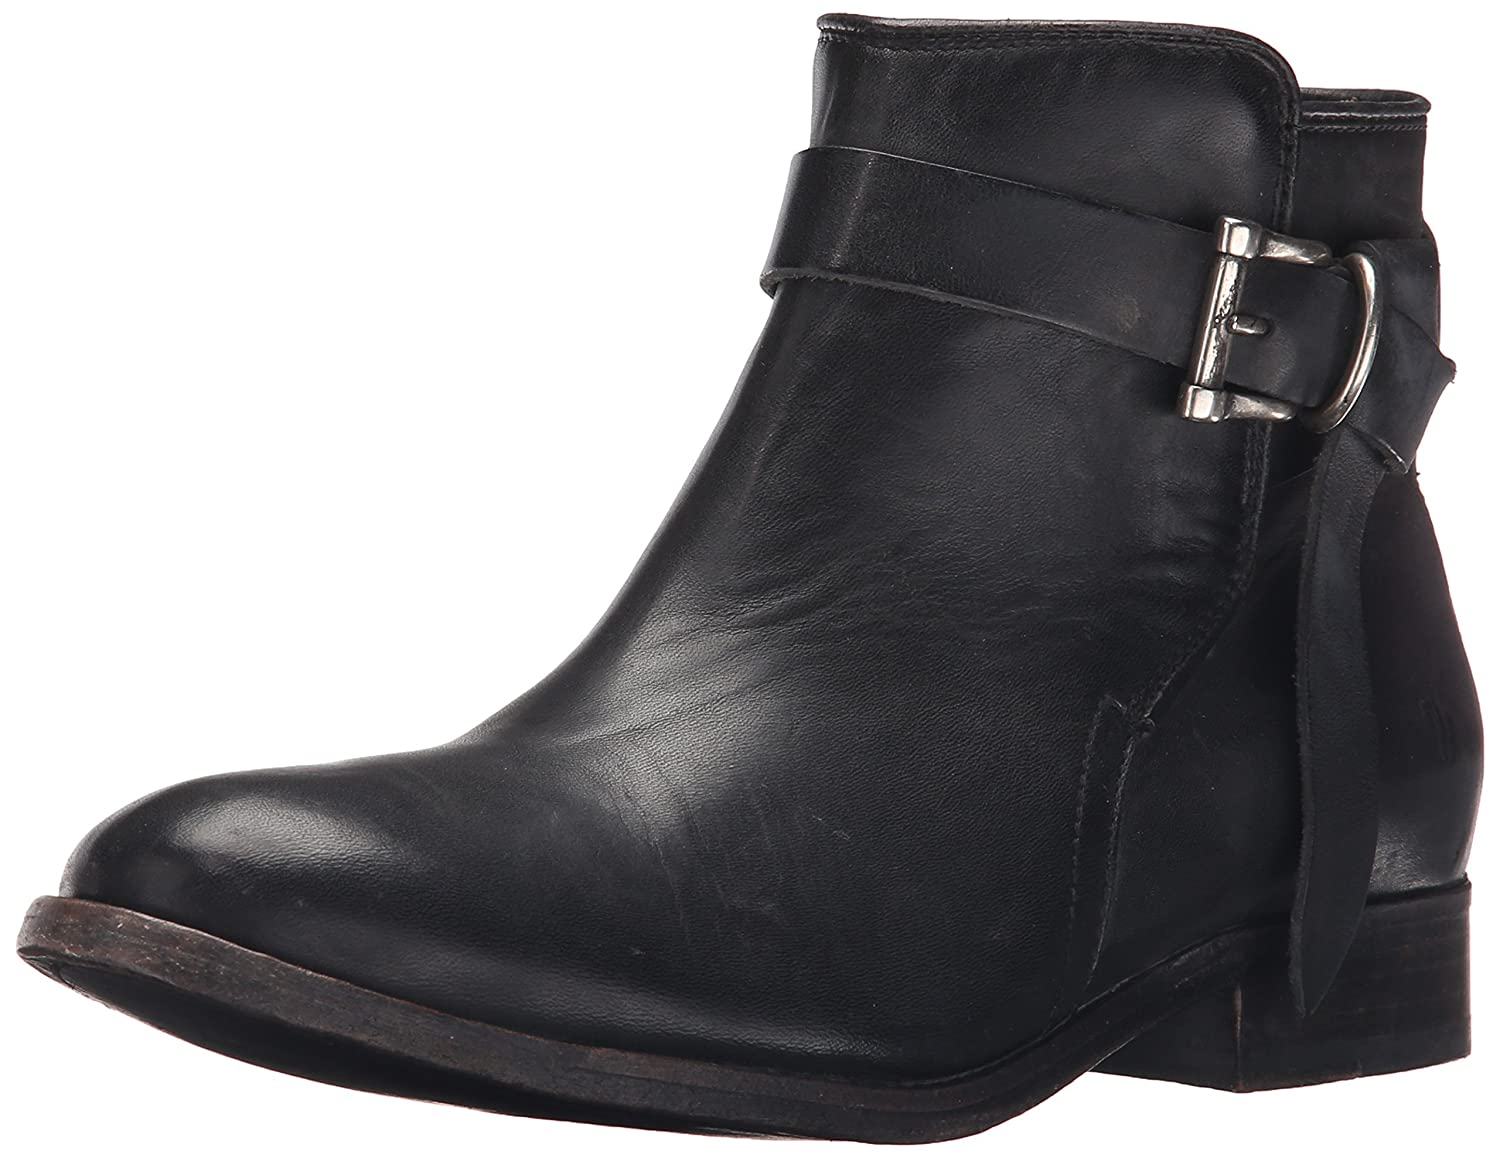 FRYE Women's Melissa Knotted Short Boot B01015SLU4 7 B(M) US|Black Polished Stonewash Leather-76793